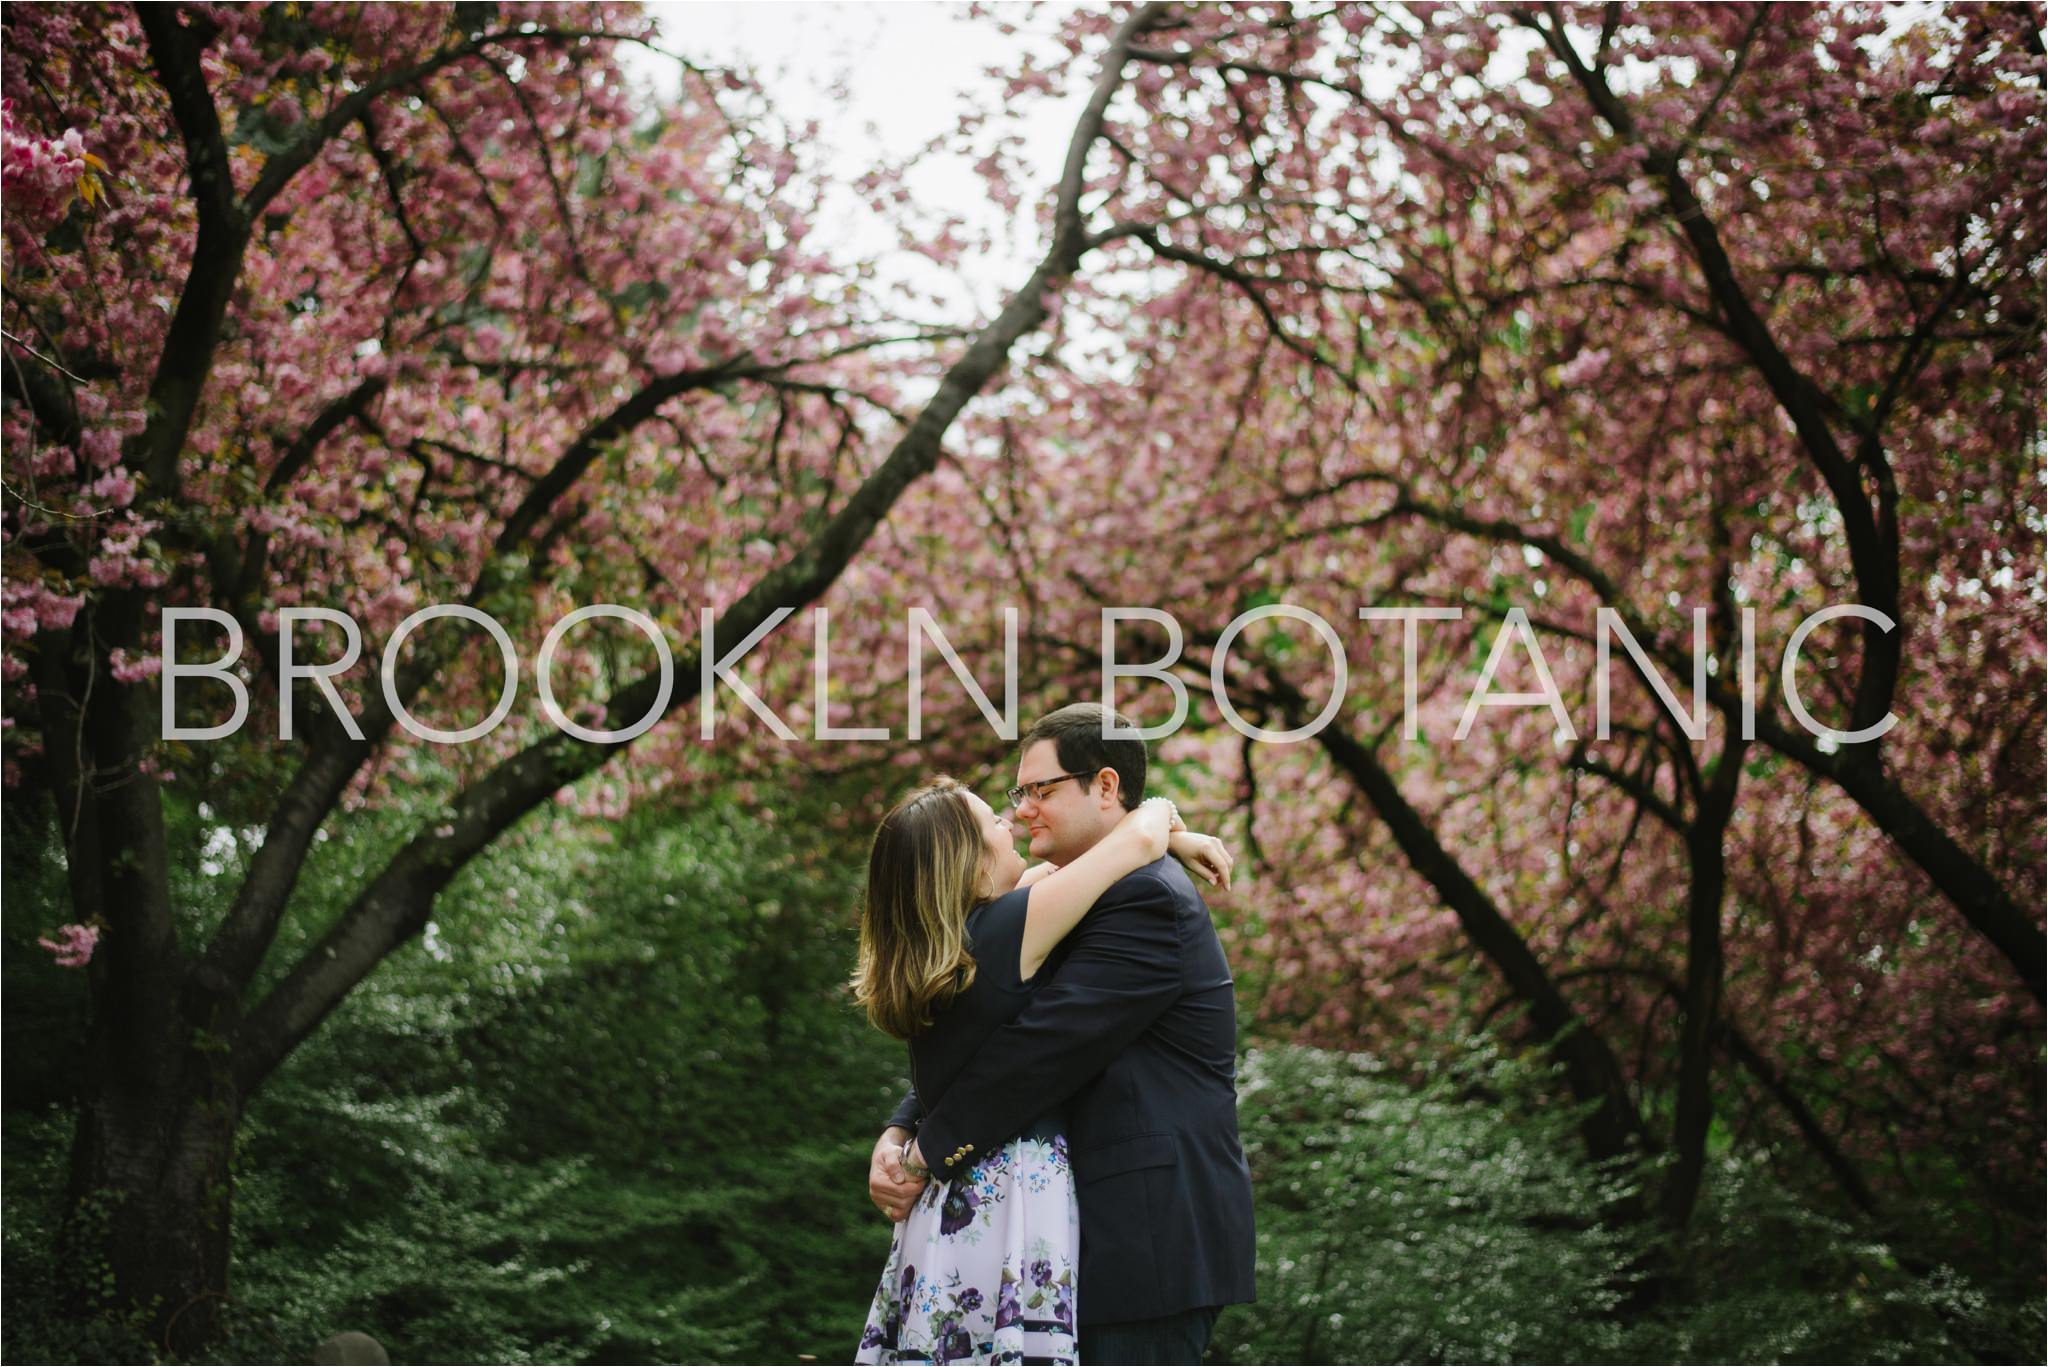 NYC Engagement Locations, Brooklyn Botanical Garden, Brian Hatton Photography